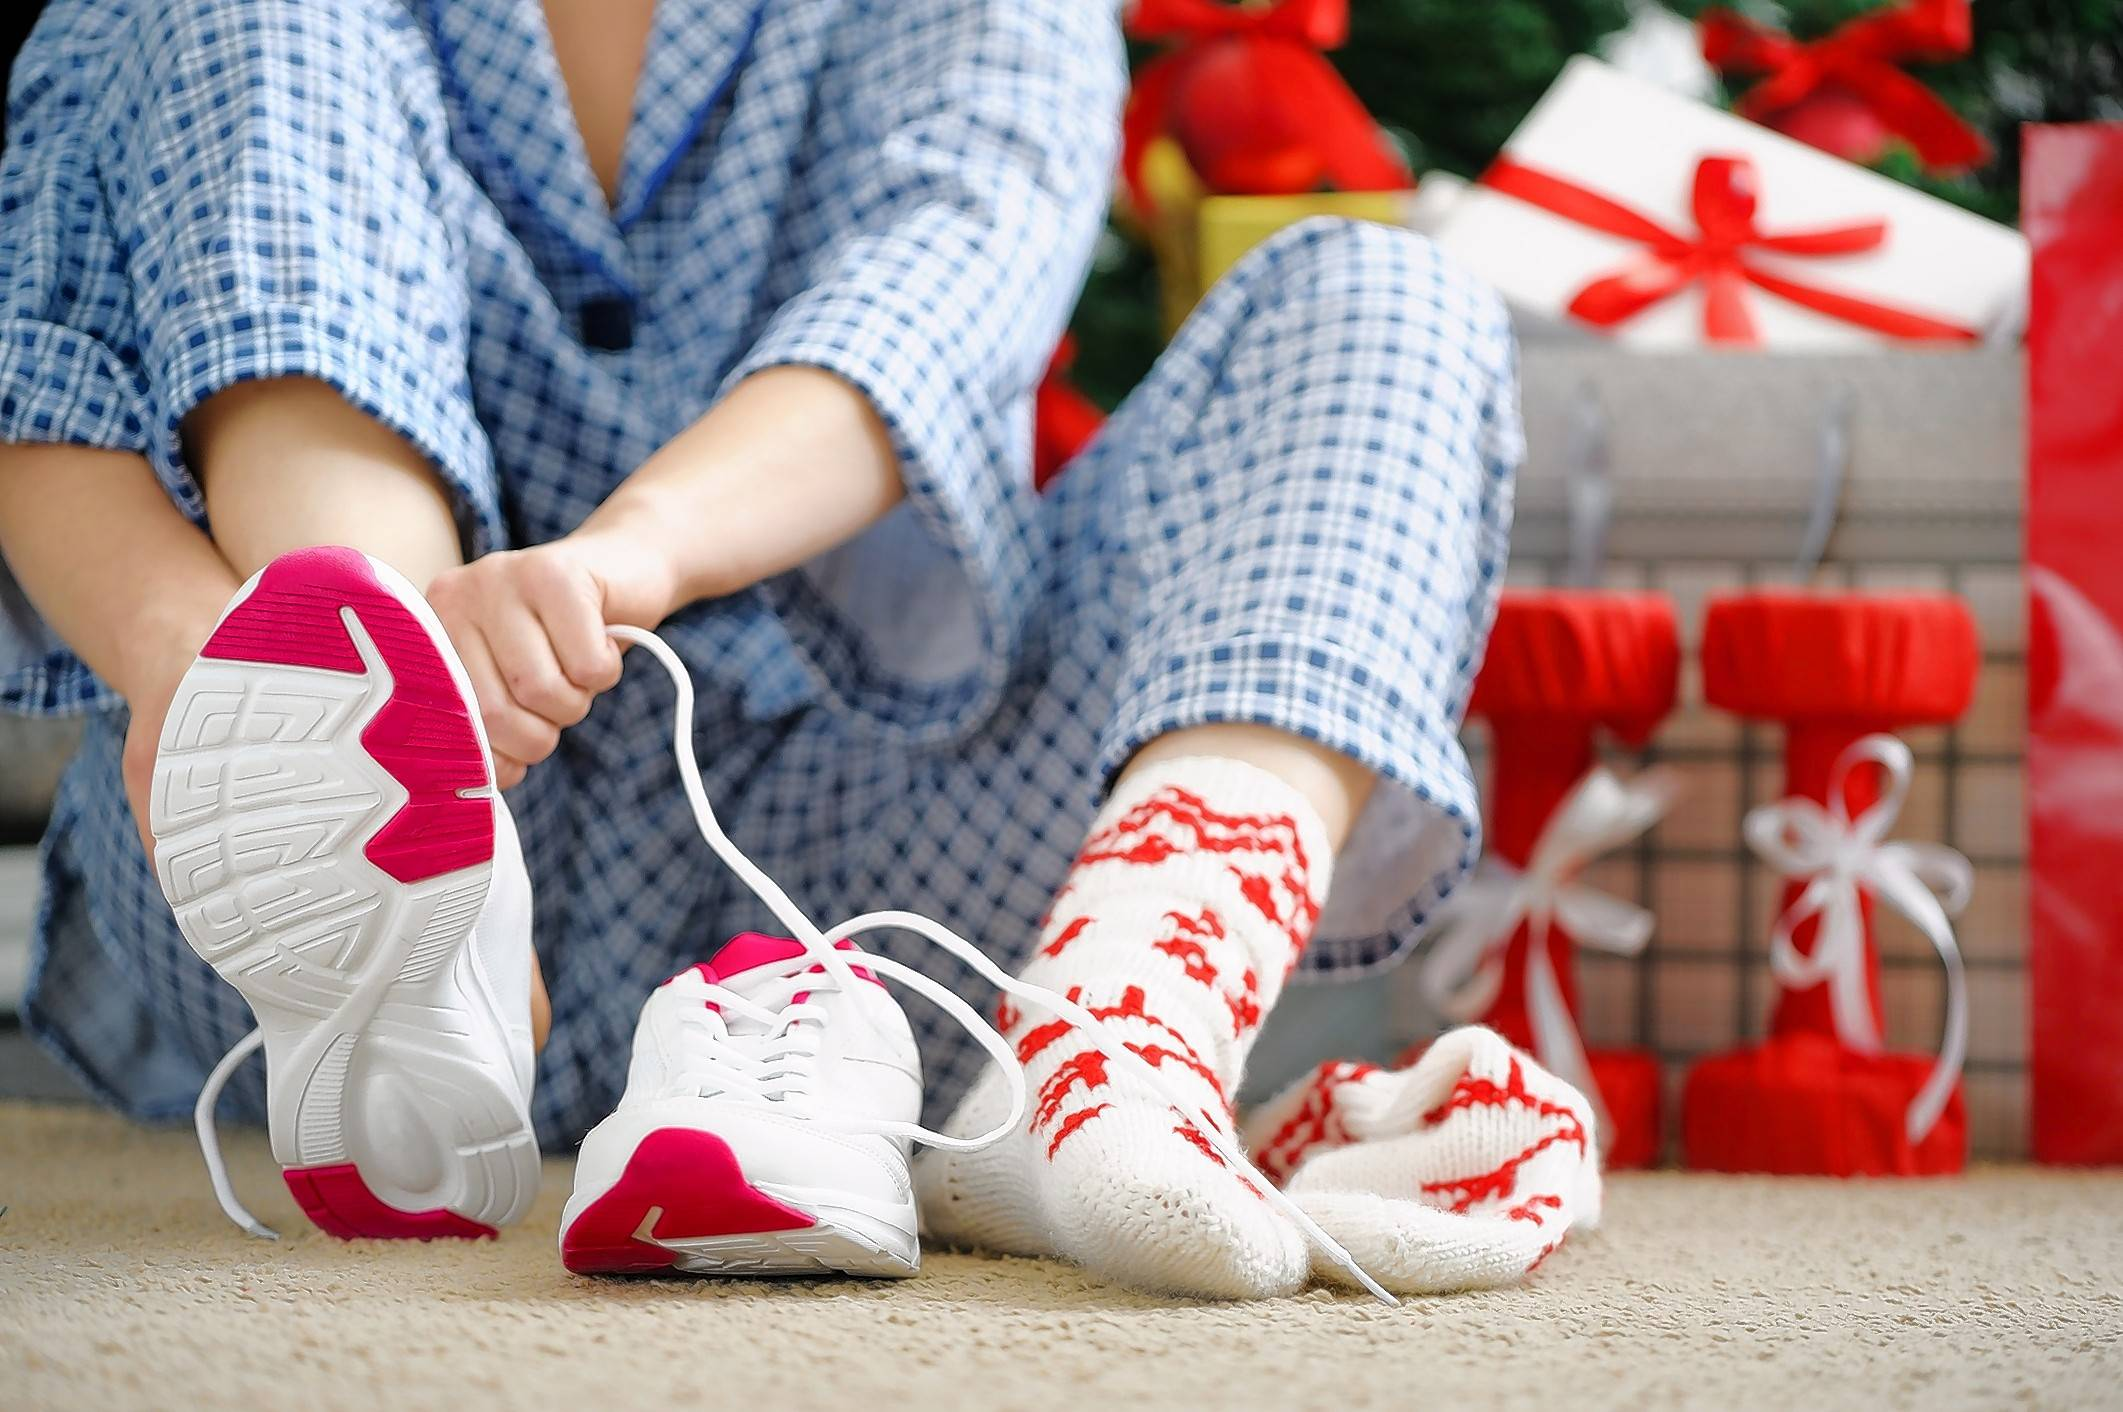 Even if you're traveling over the holidays, you can lace up your shoes and take a walk.